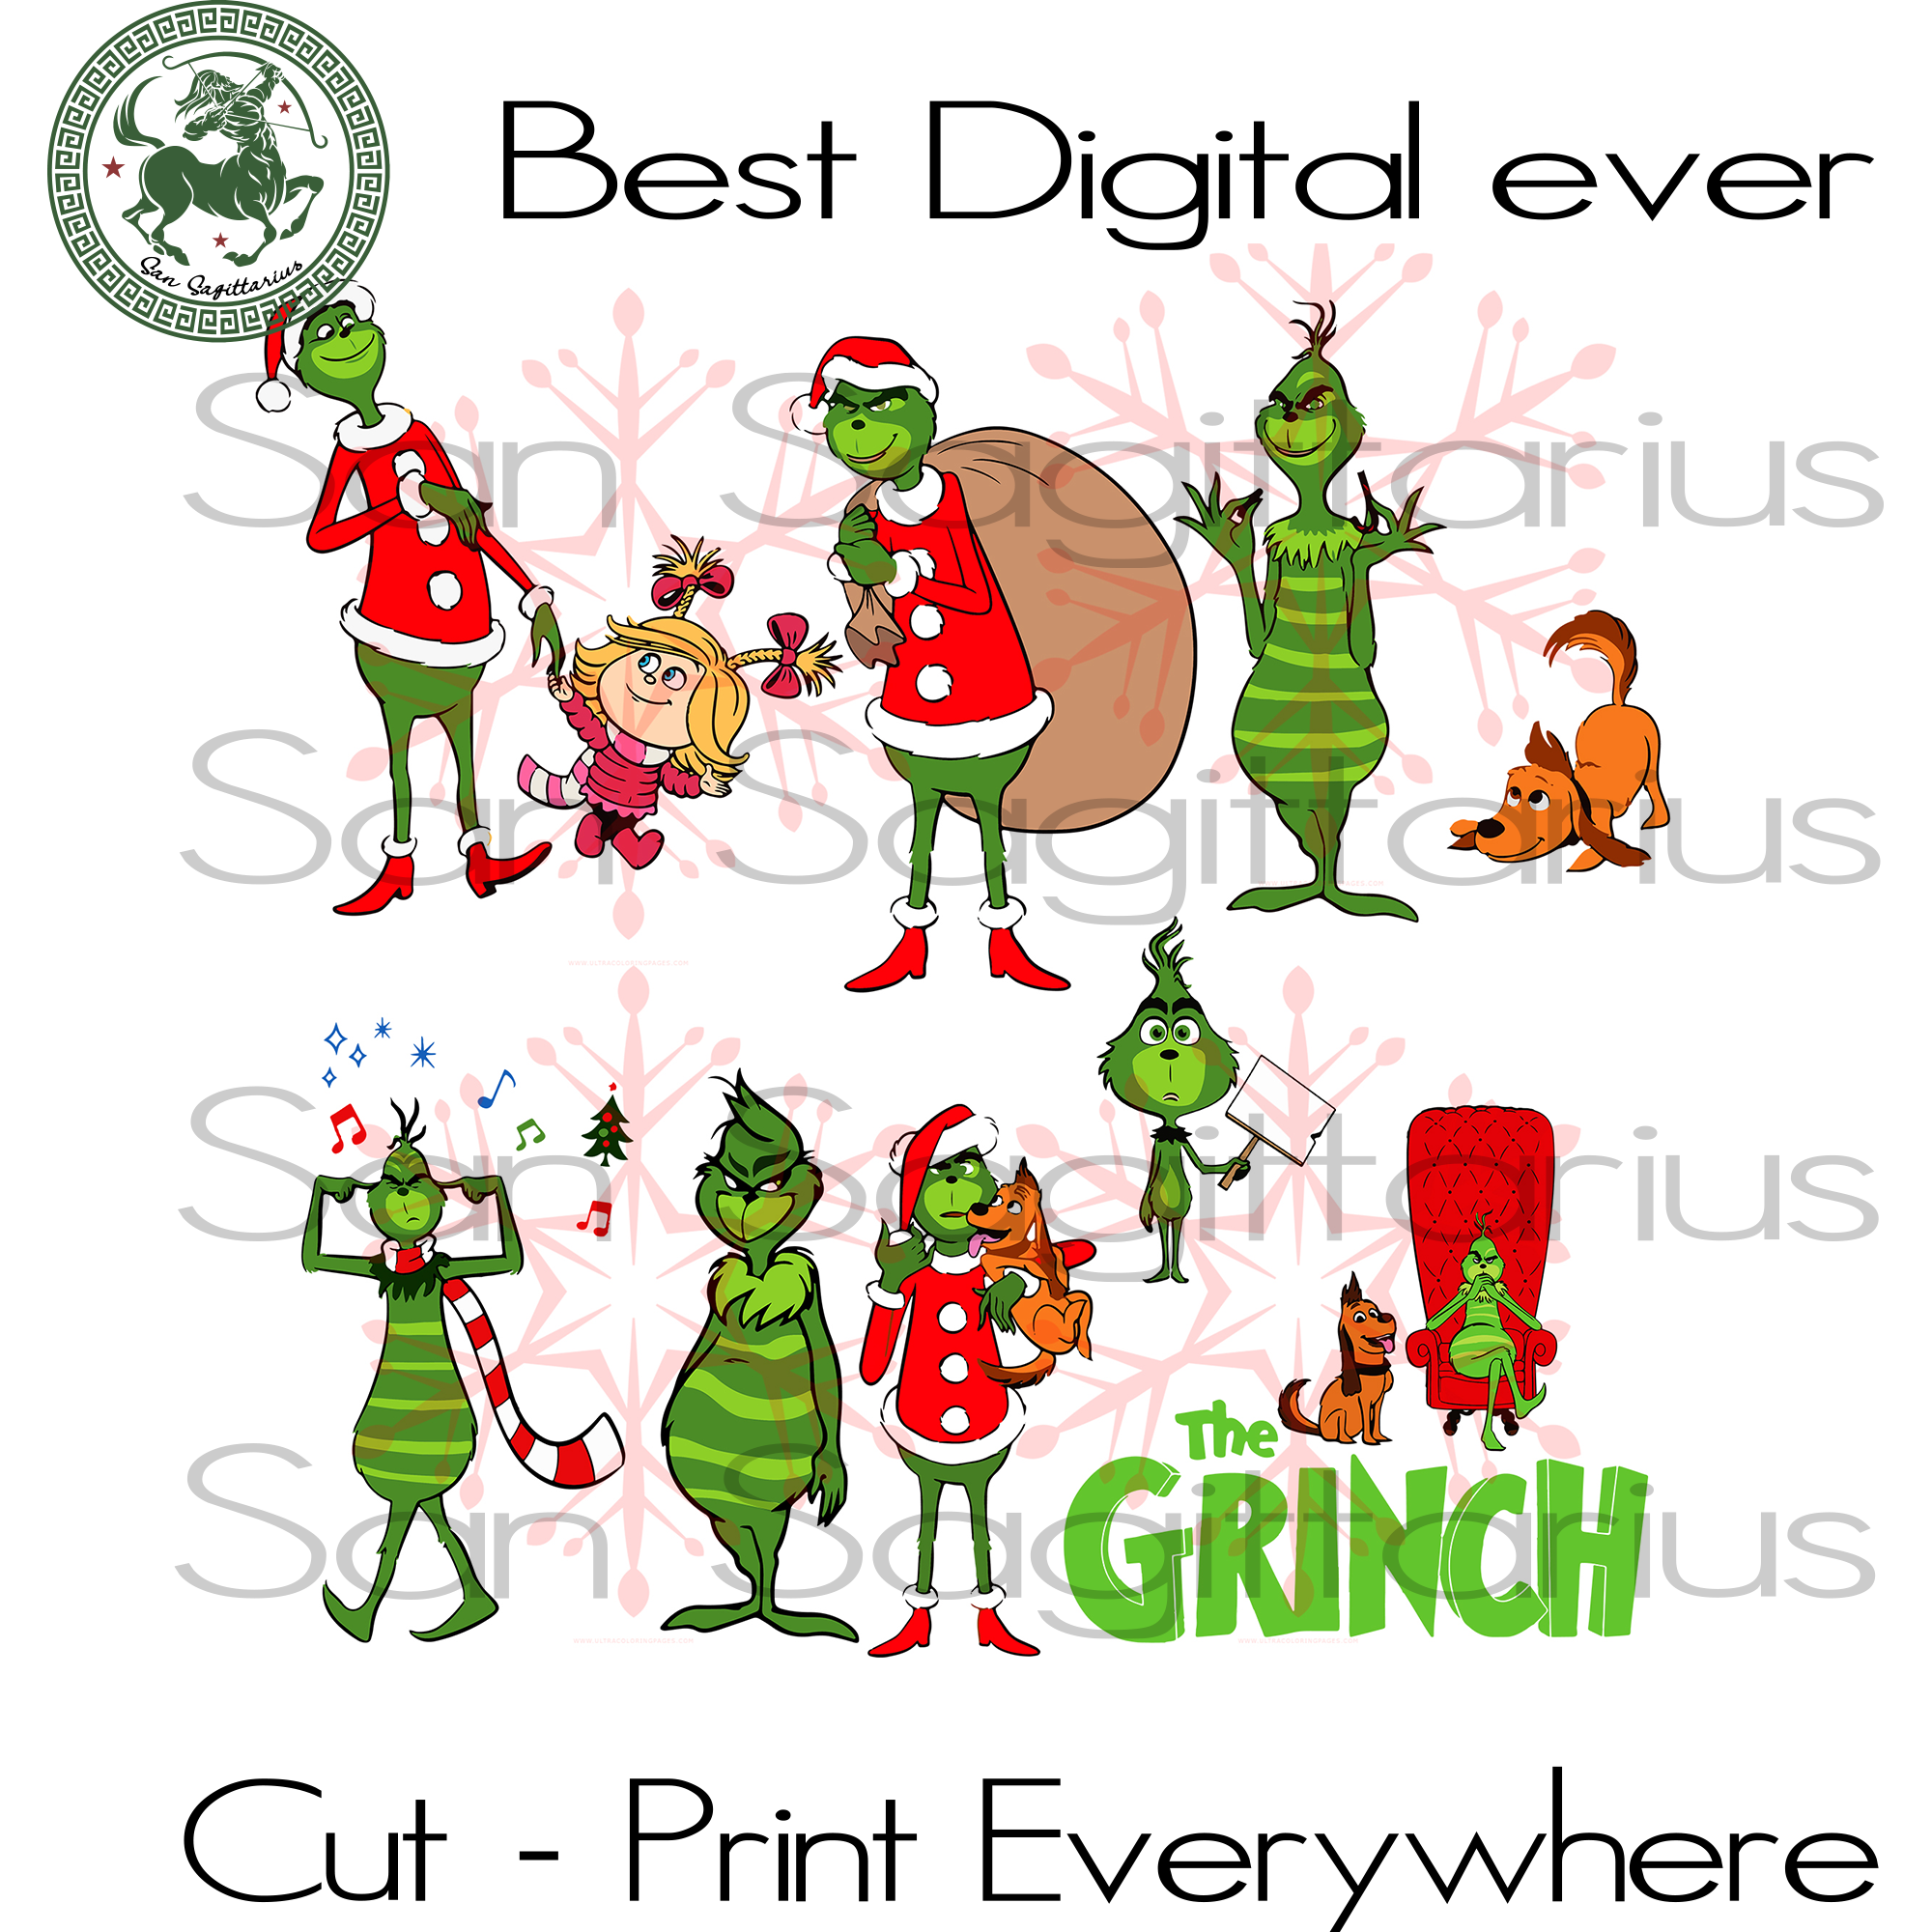 The Grinch, Grinch SVG, Grinch Shirts, Christmas SVG, Grinch Gifts, Grinch Vector, Grinch Clipart, Merry Christmas, Christmas Holiday, Christmas Party, Funny Christmas, Christmas Tree,  Chris